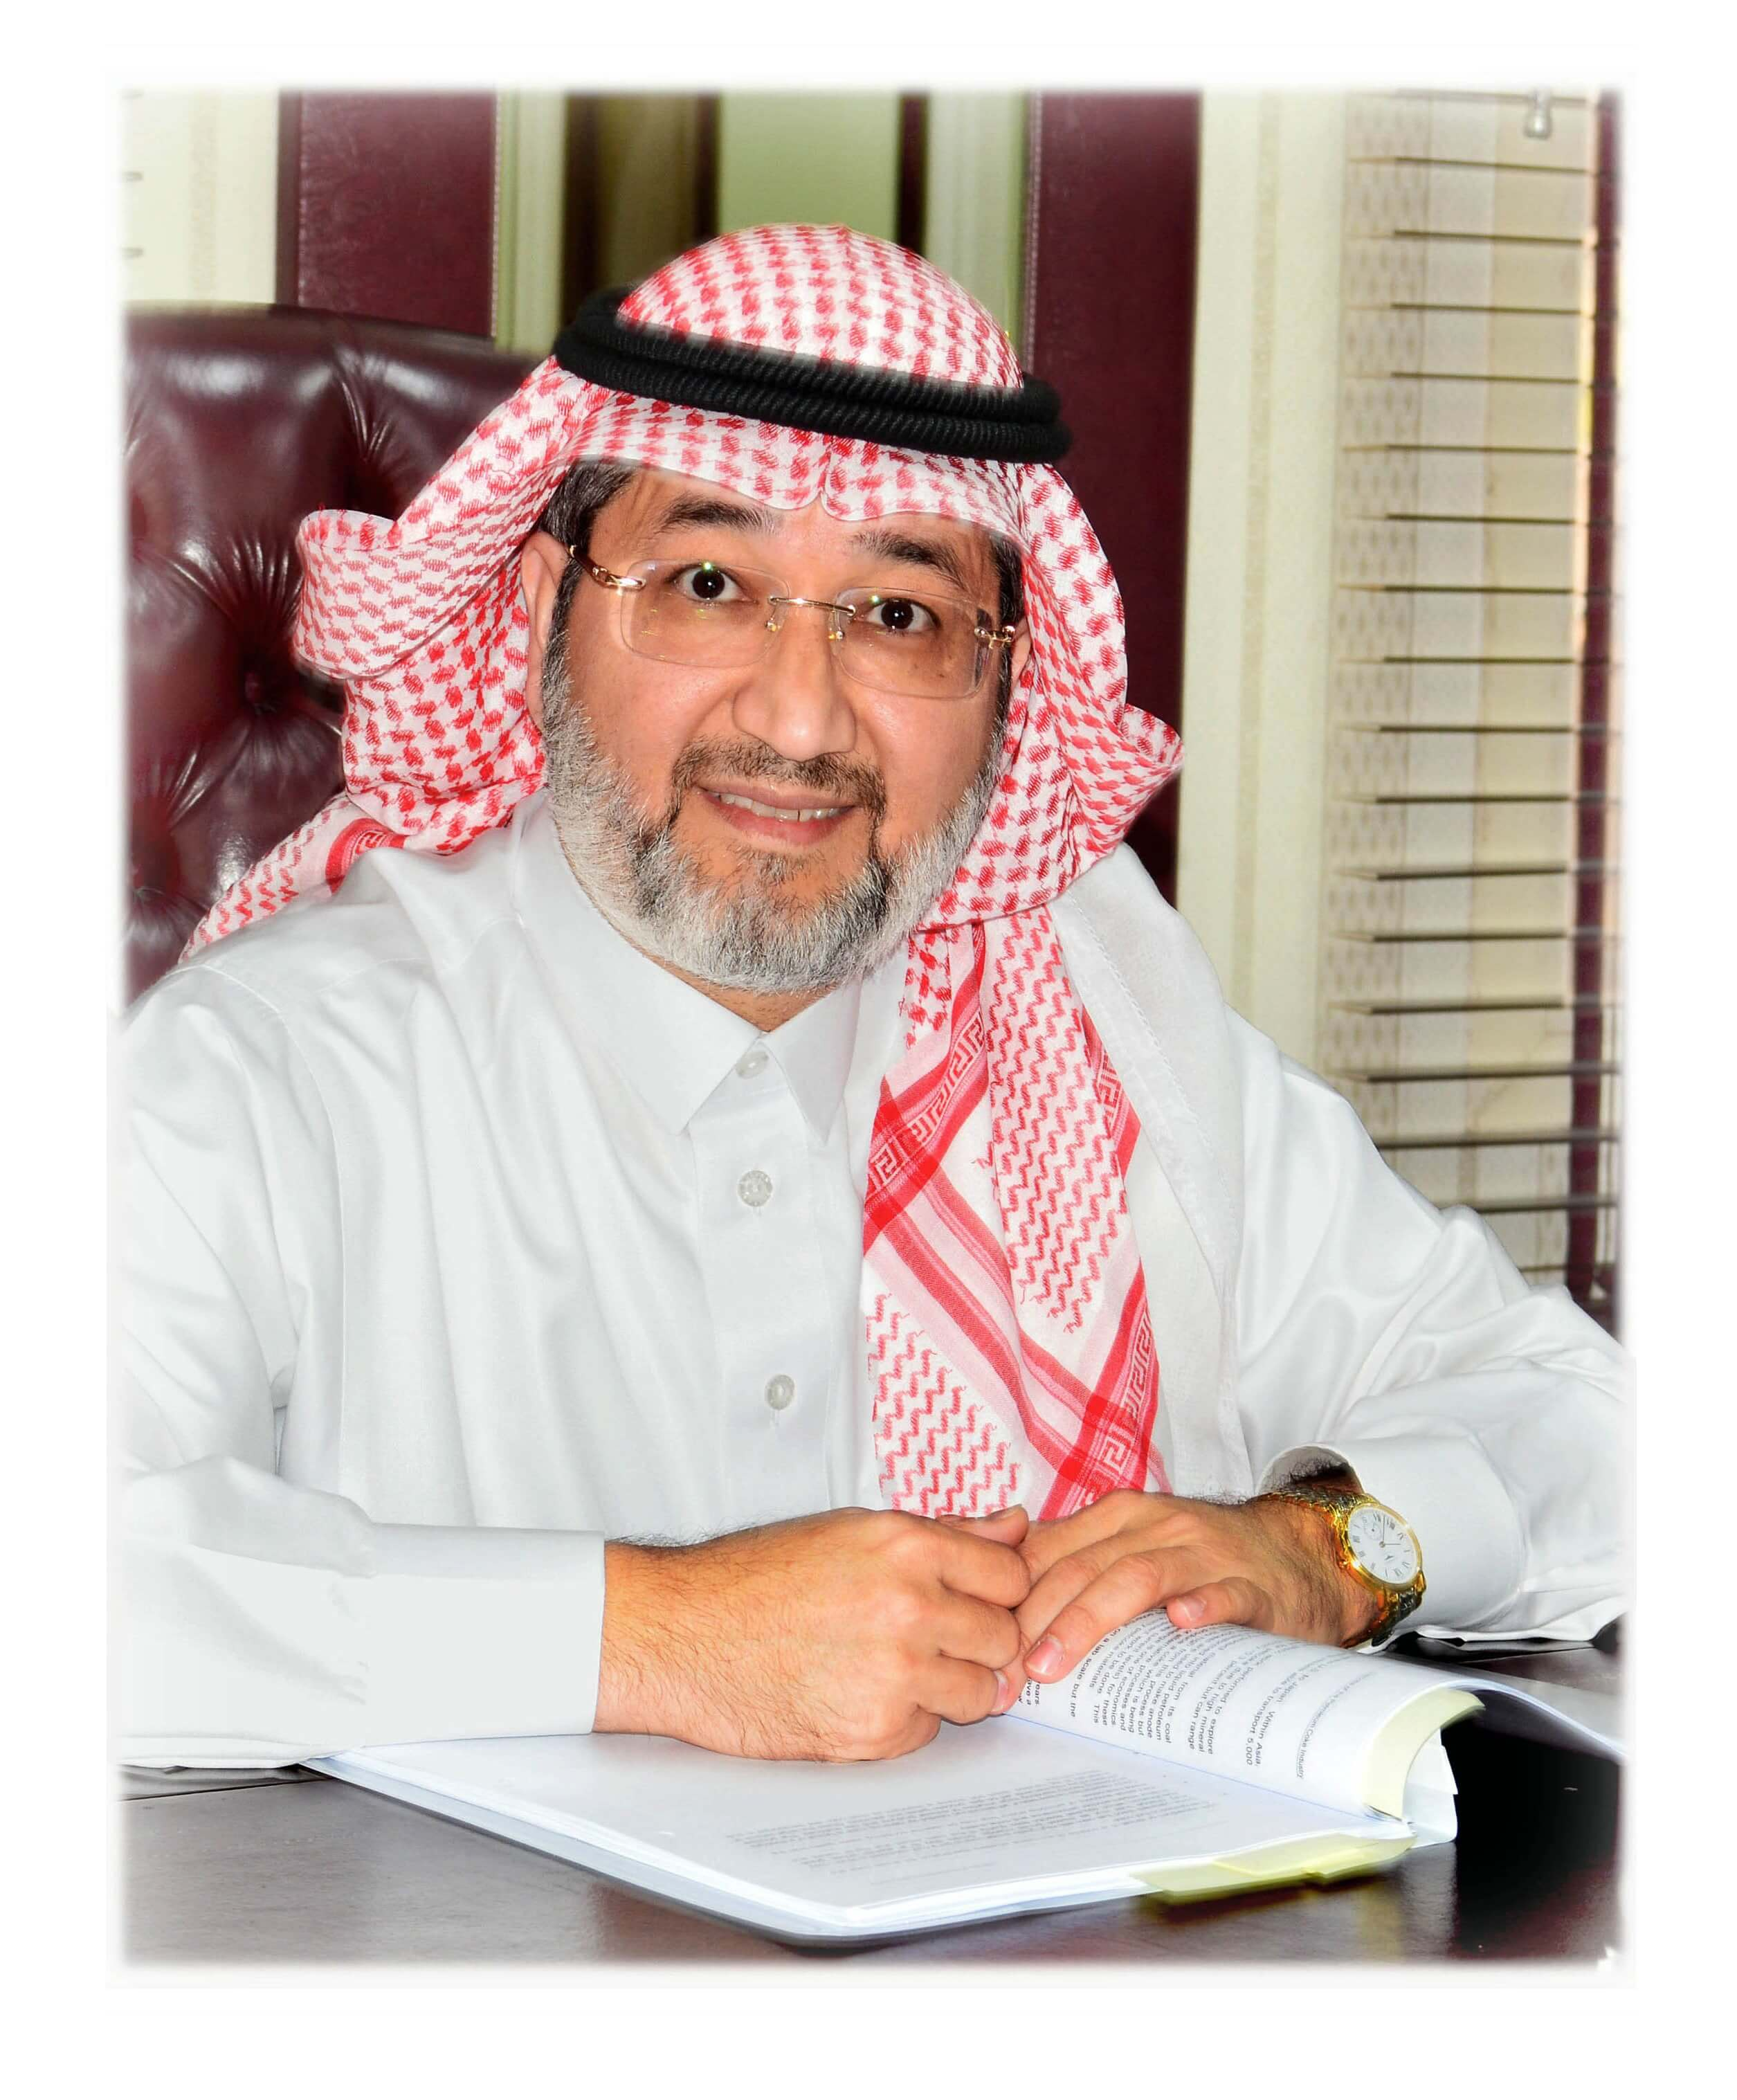 JFC Arabia Ltd|Ceo Message- We focus entirely on what we do